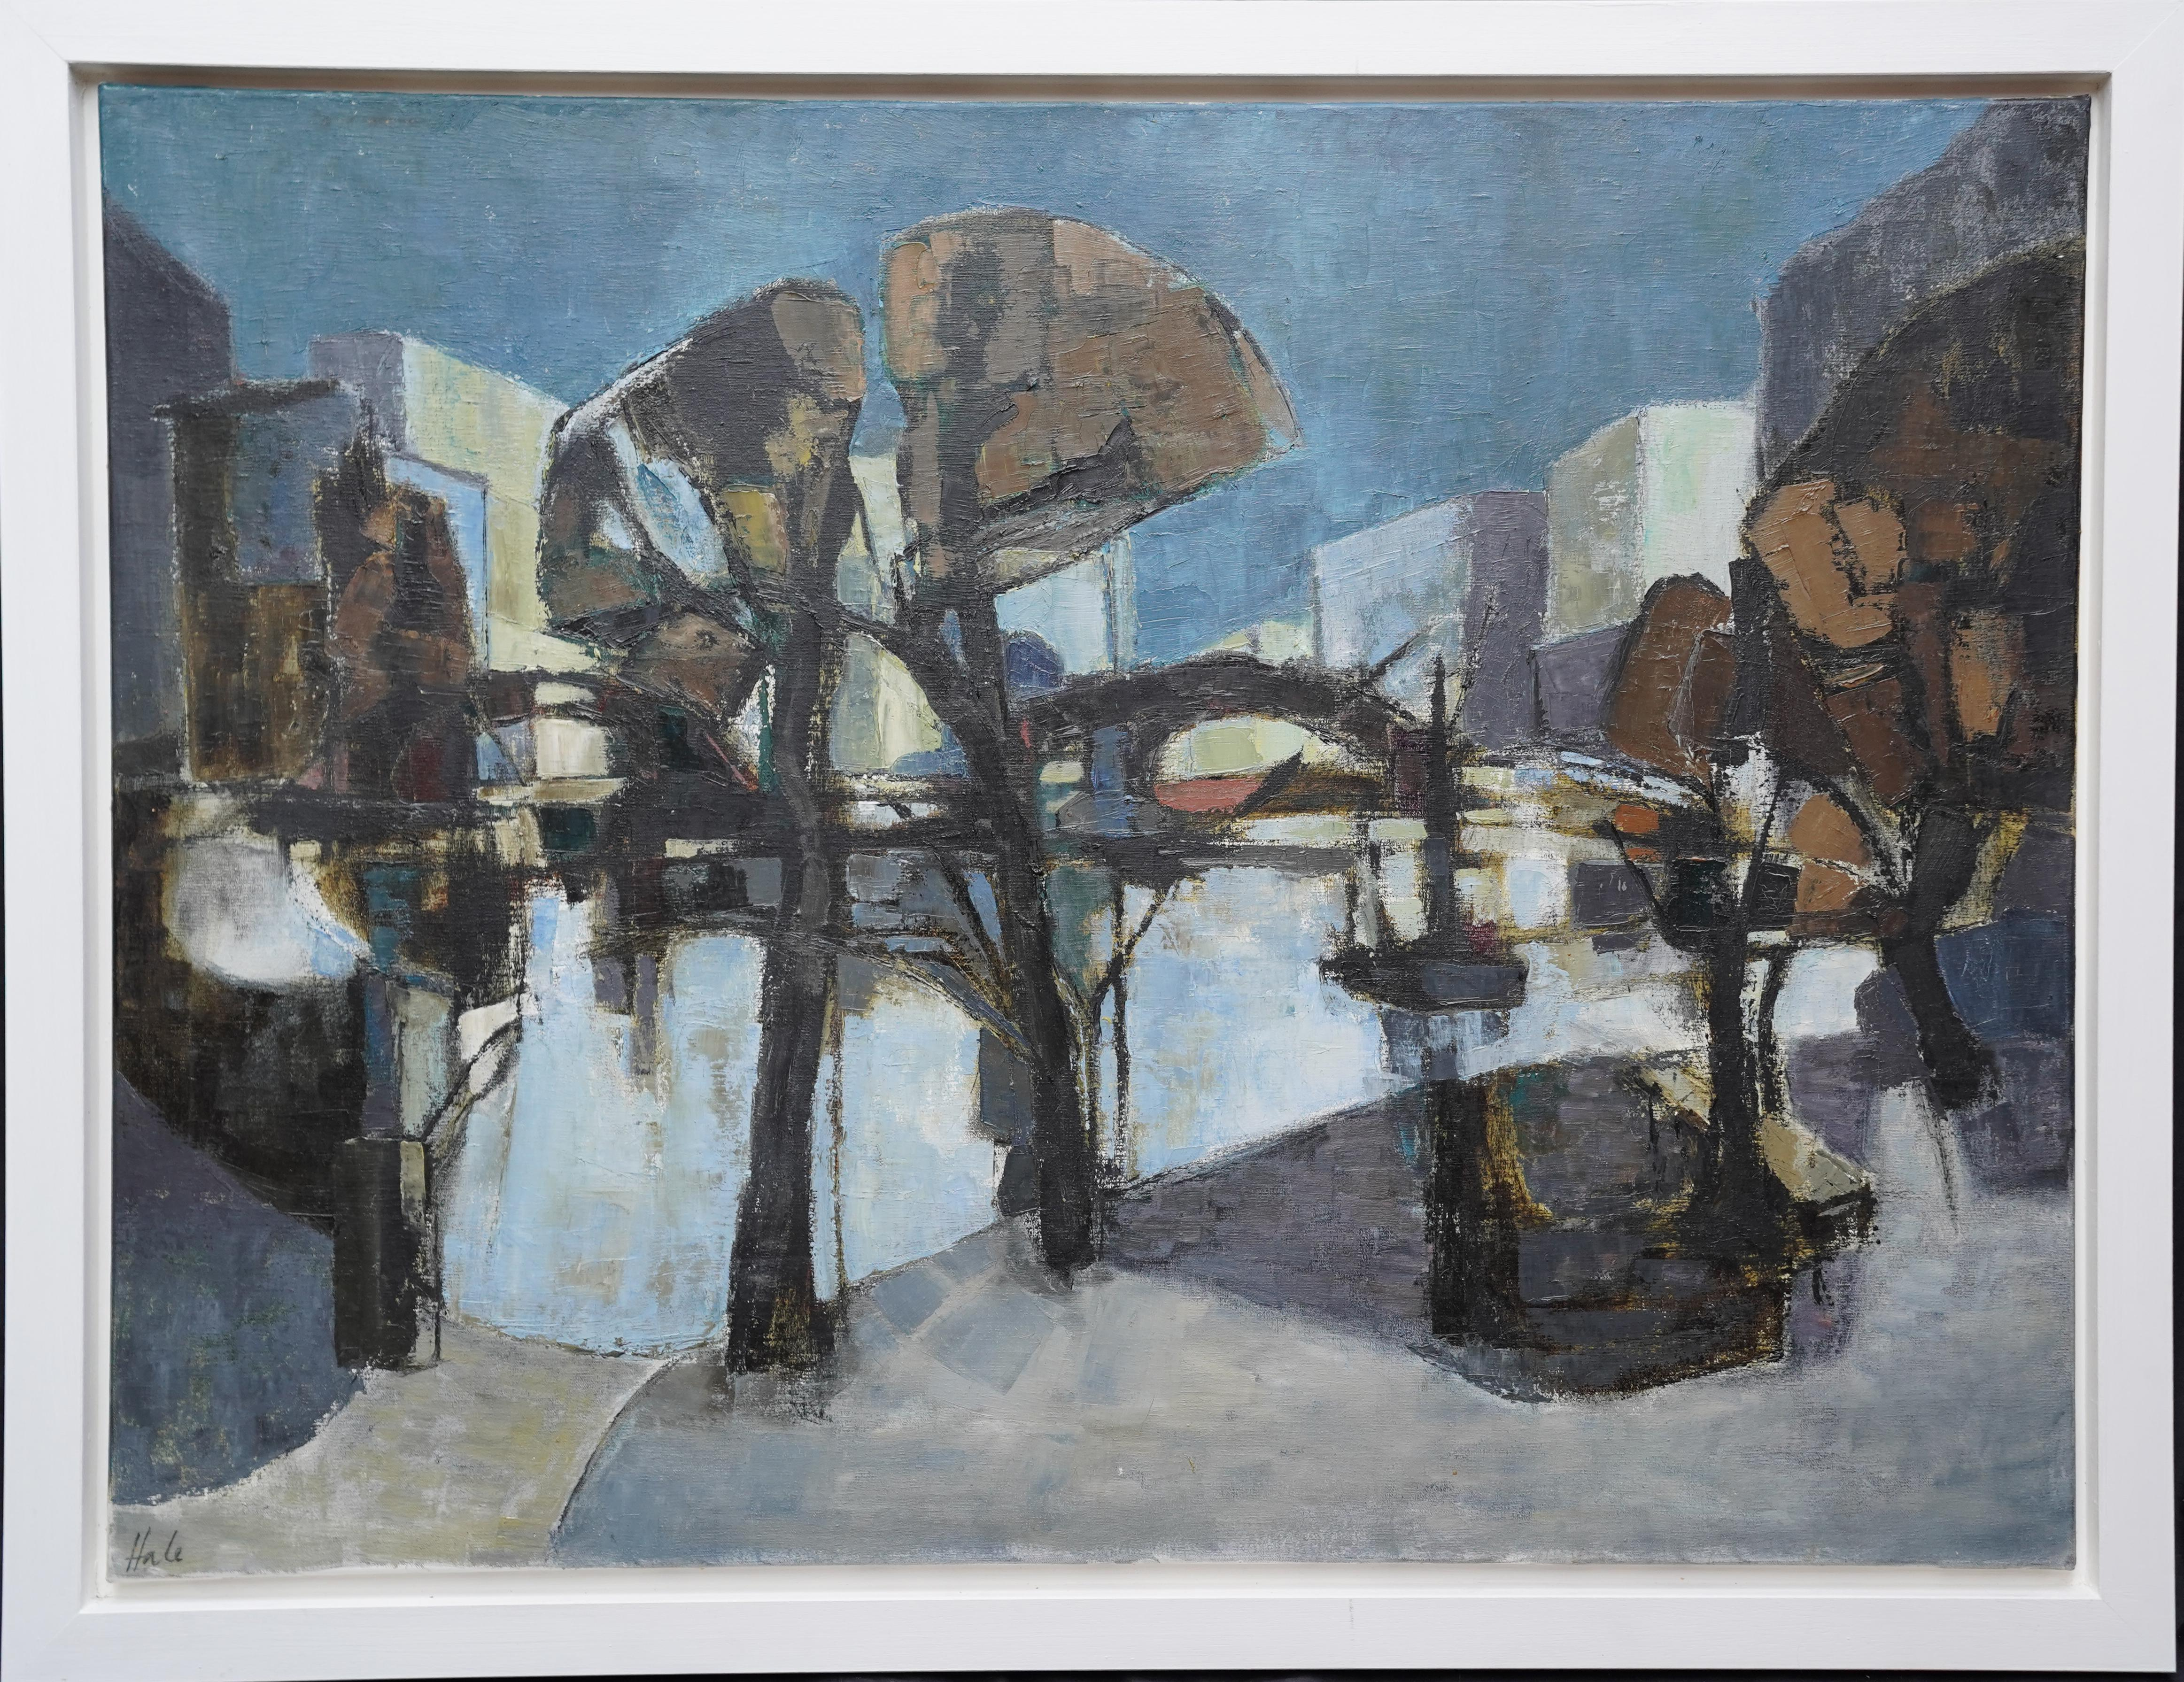 Waterfront - British 1960's art Abstract Expressionist exhibited oil painting